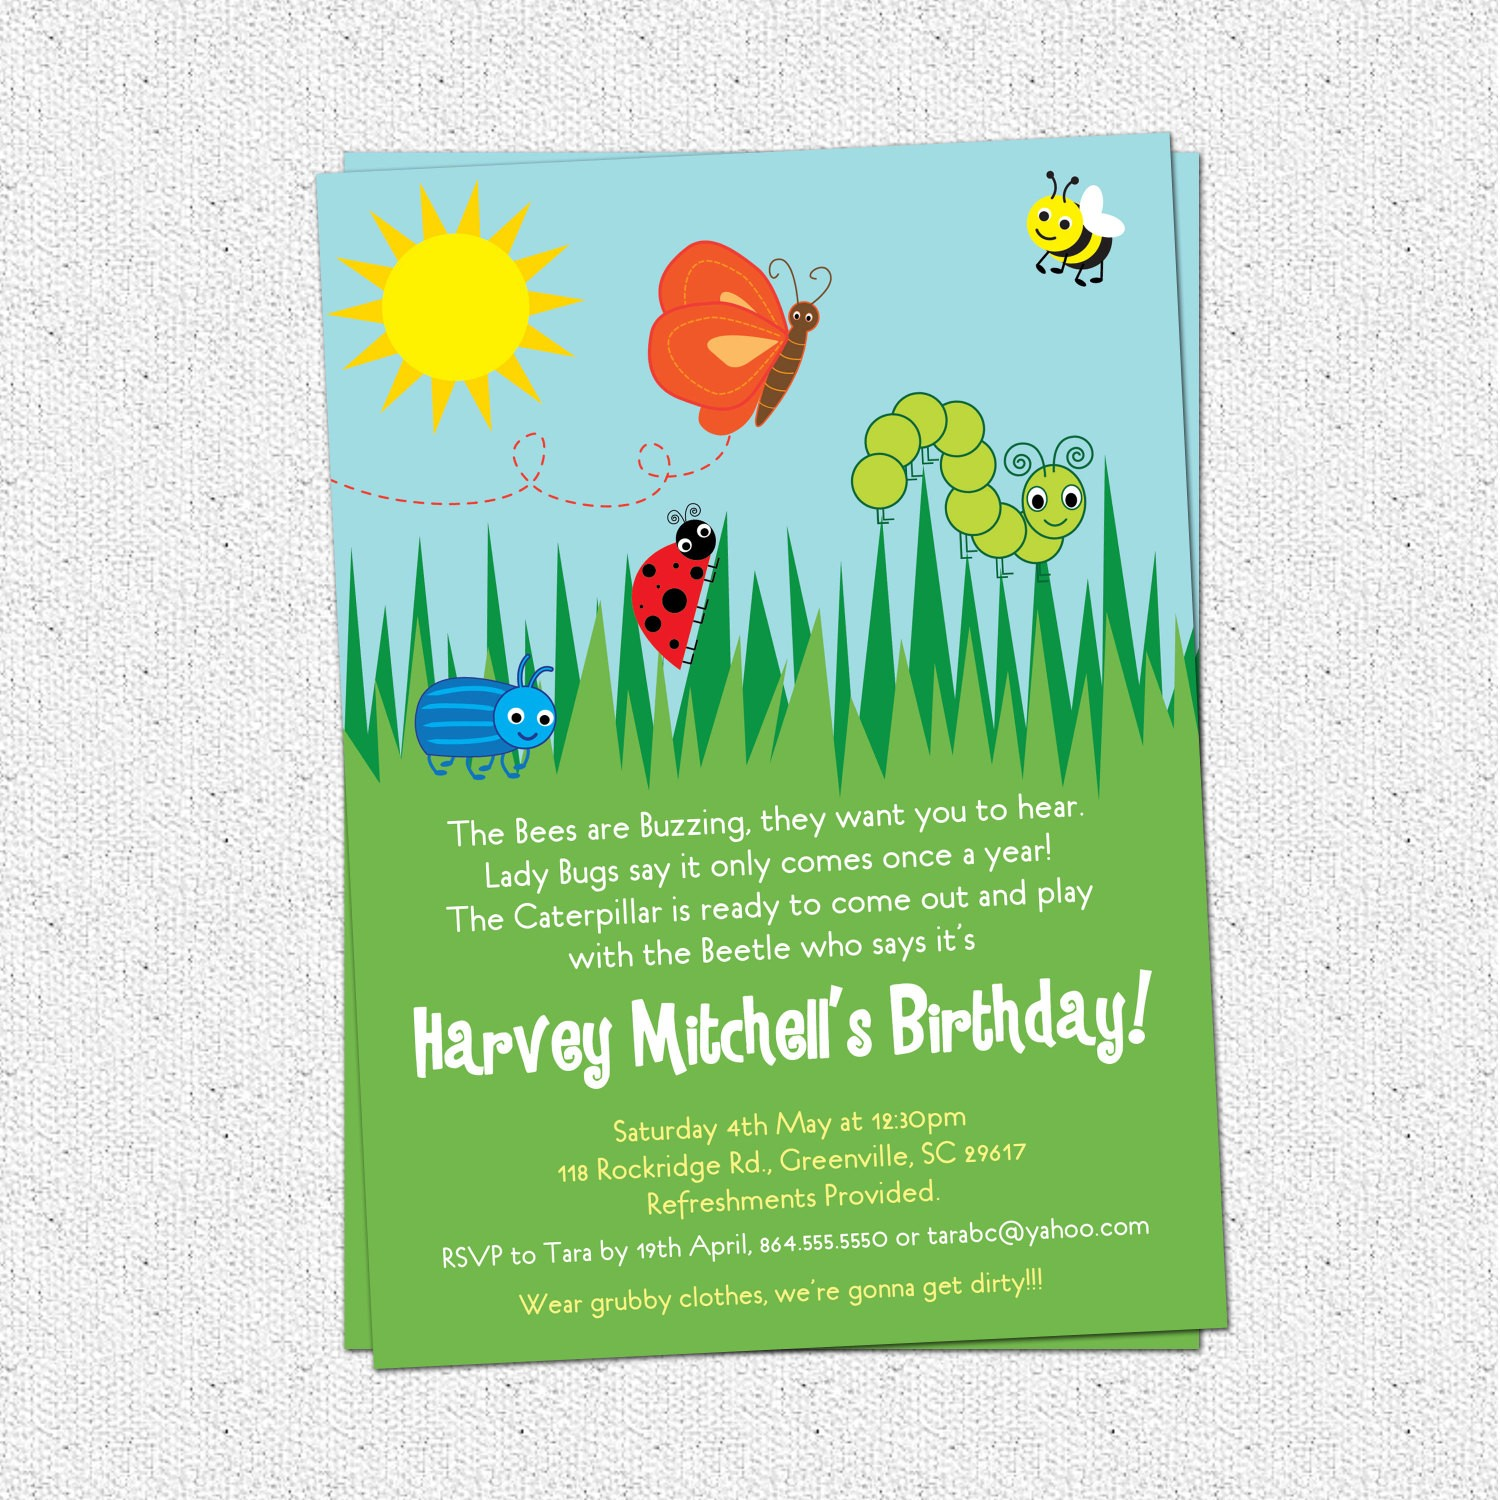 bug birthday party invitation wording ; invitation-wording-for-ladybug-party-save-bug-insects-birthday-party-invitations-summer-butterfly-bee-of-invitation-wording-for-ladybug-party